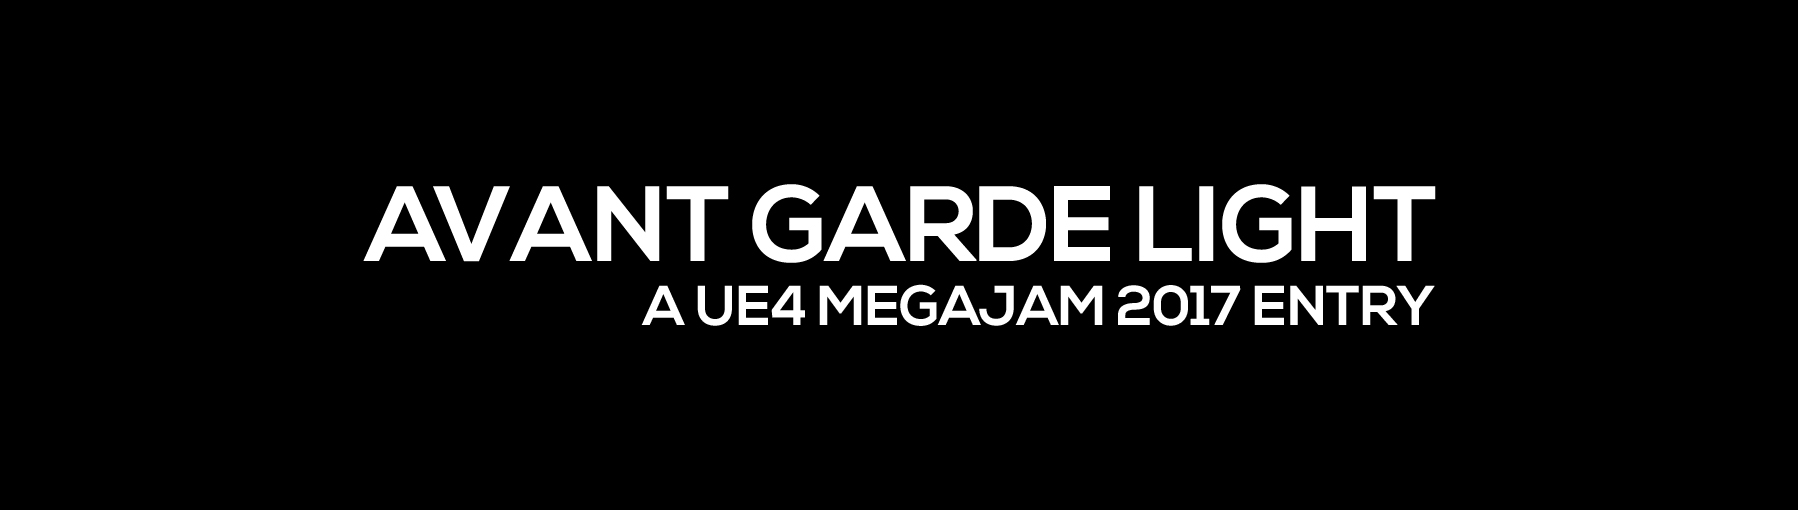 AVANT GARDE LIGHT (UE4 Megajam 2017)